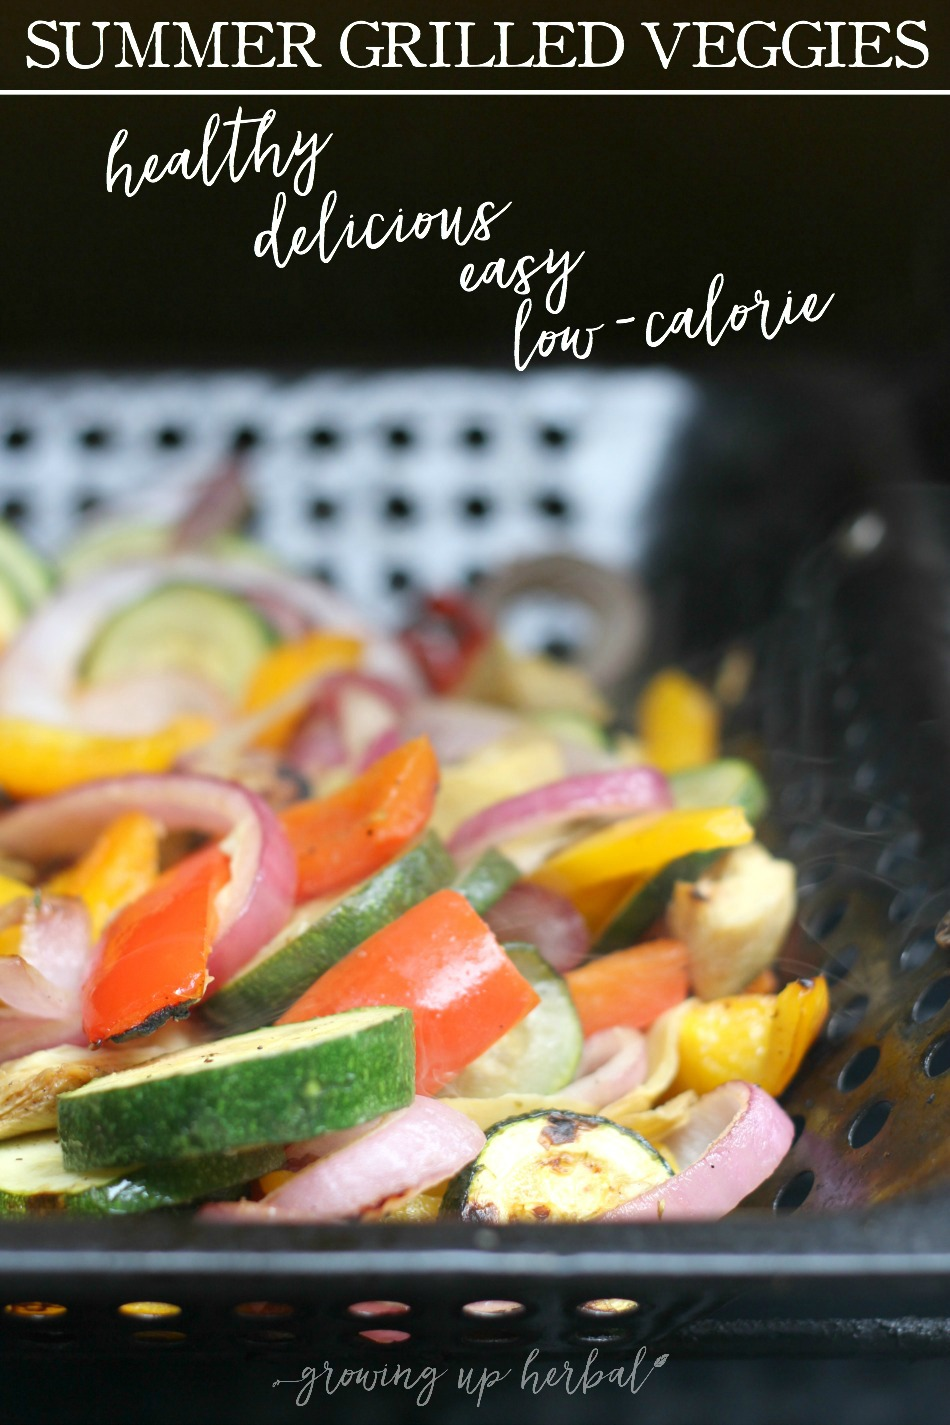 Summer Grilled Veggies (The Easiest Side Dish Ever) | Growing Up Herbal | You'll fall in love with how tasty and easy to make these summer grilled veggies are!